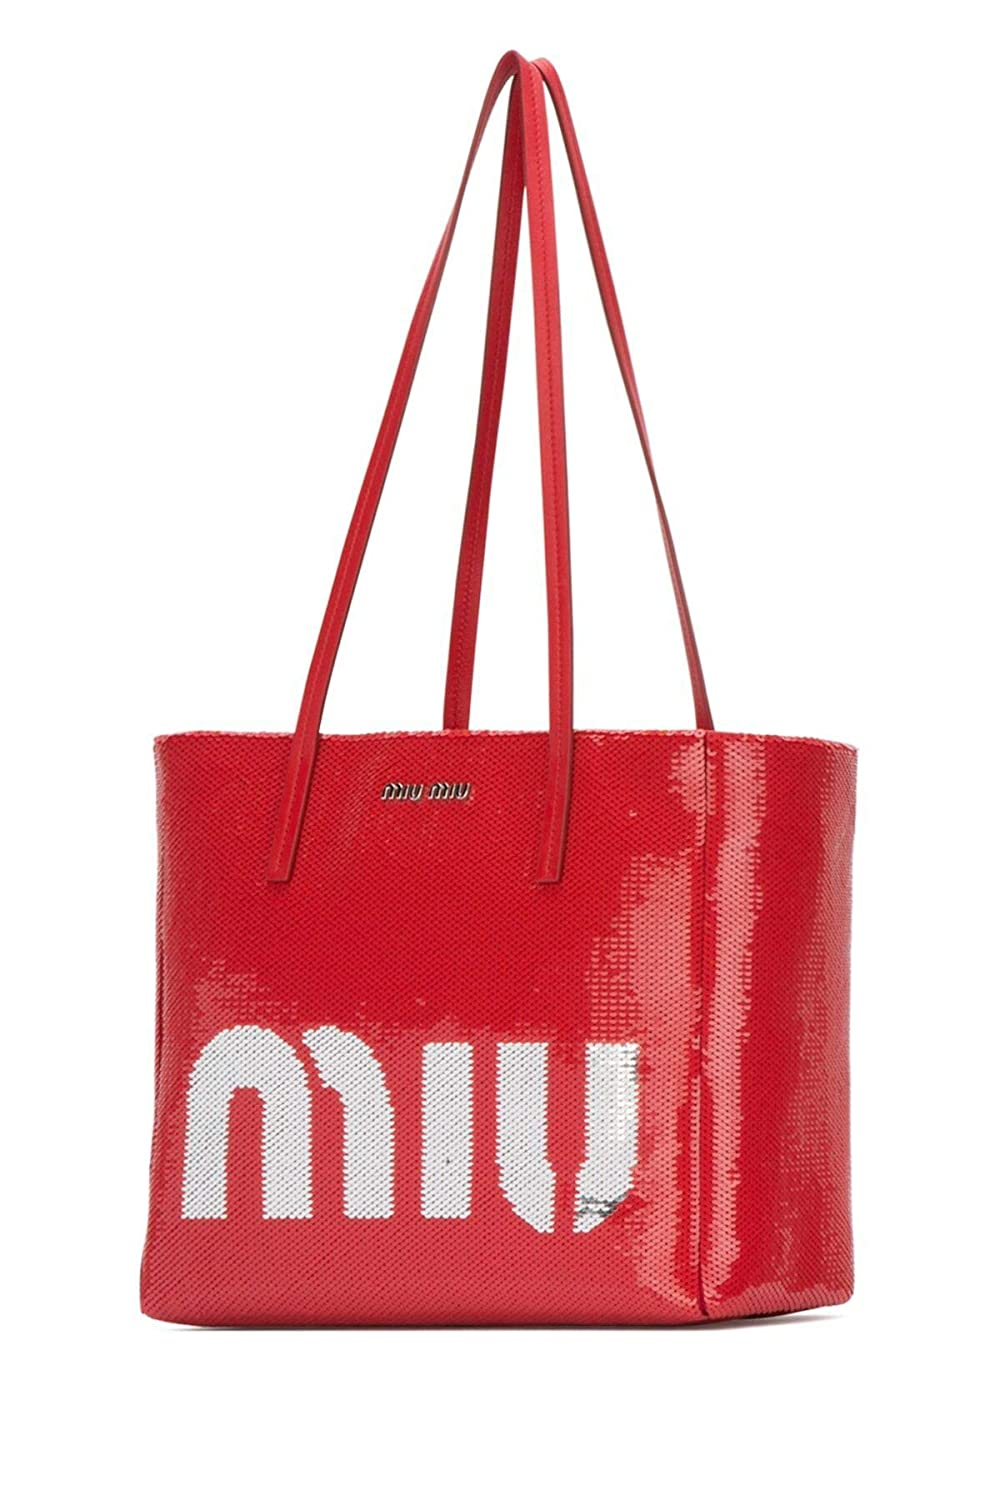 065394cdfcc5 Miu Miu Women s 5Bg147959f0f5c Red Leather Tote  Amazon.co.uk  Clothing